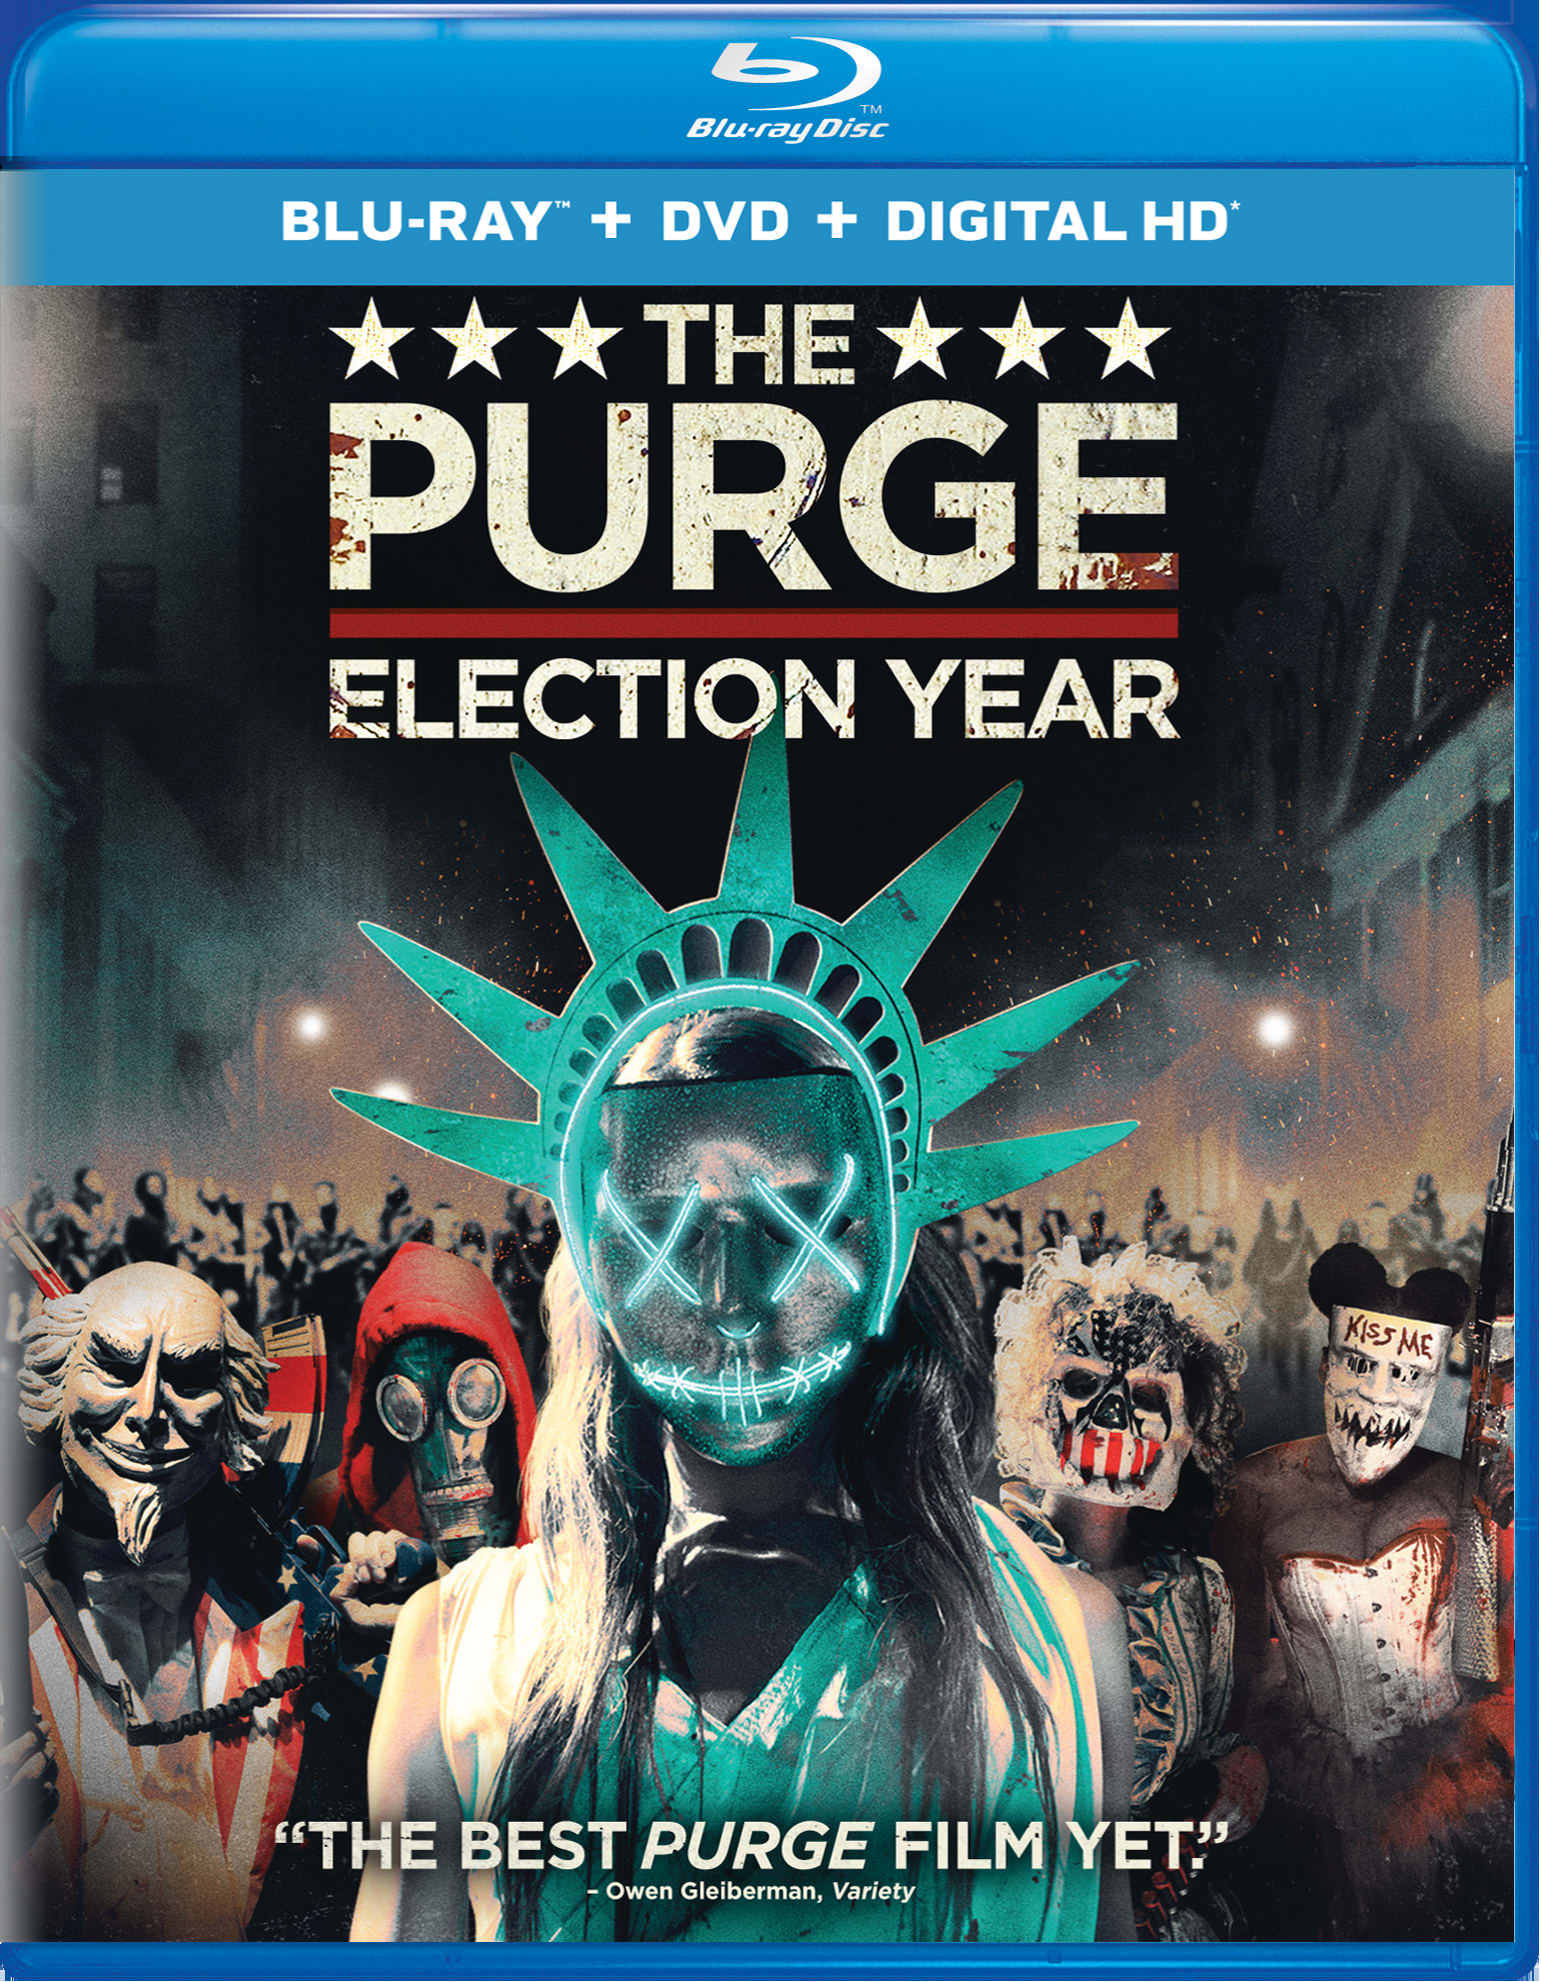 The Purge: Election Year (DVD + Digital) [Blu-ray]